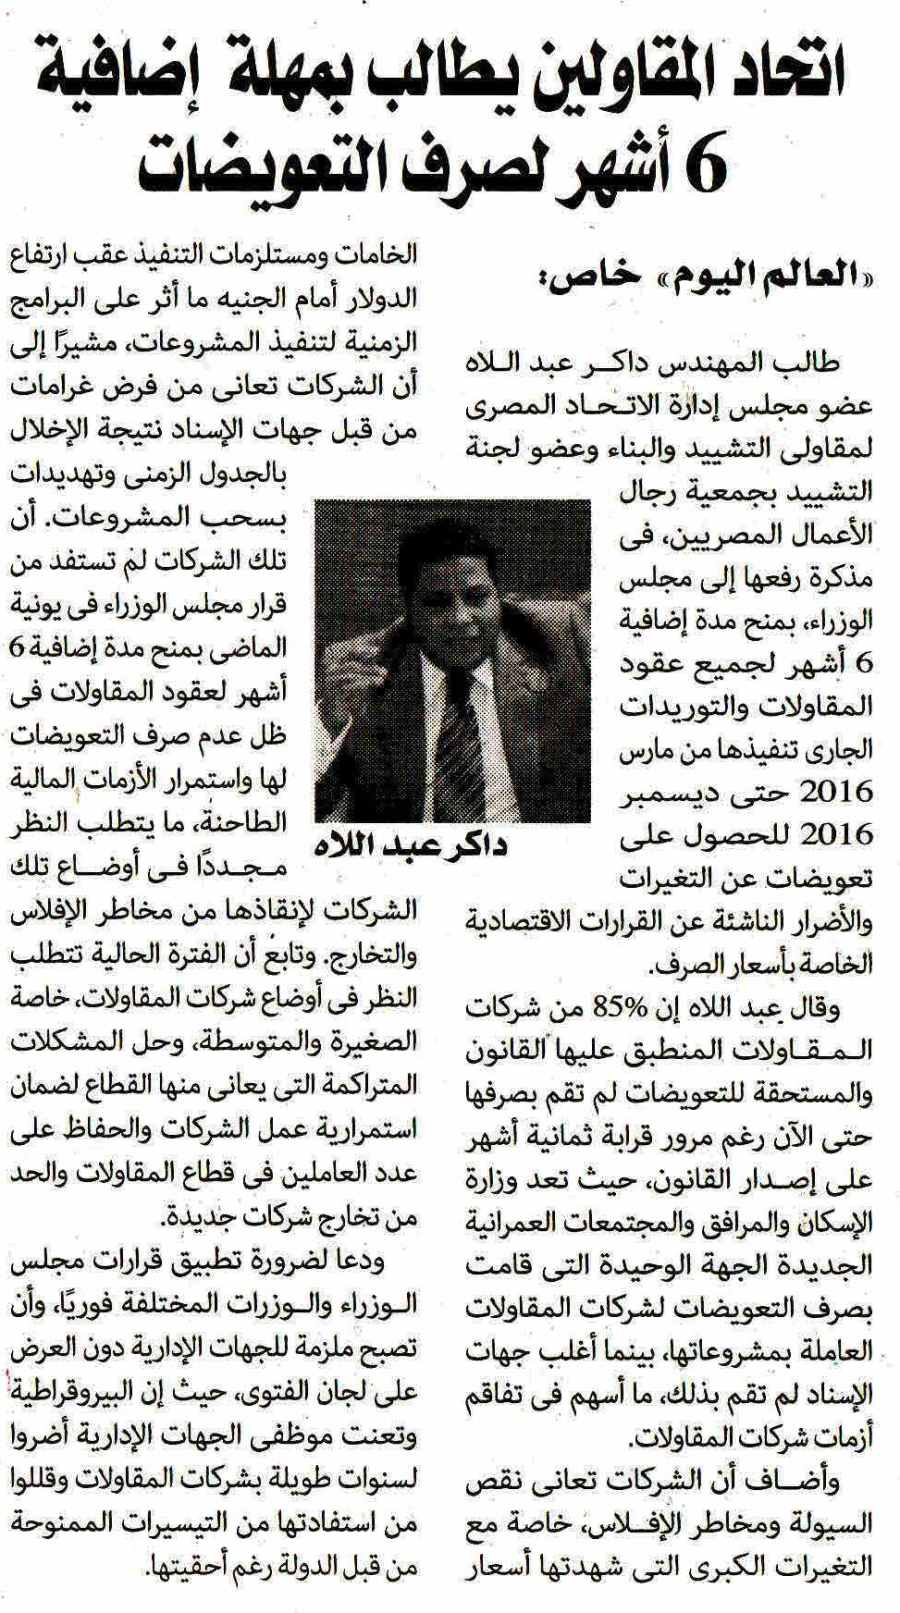 Al Alam Al Youm Weekly 12 March P.3